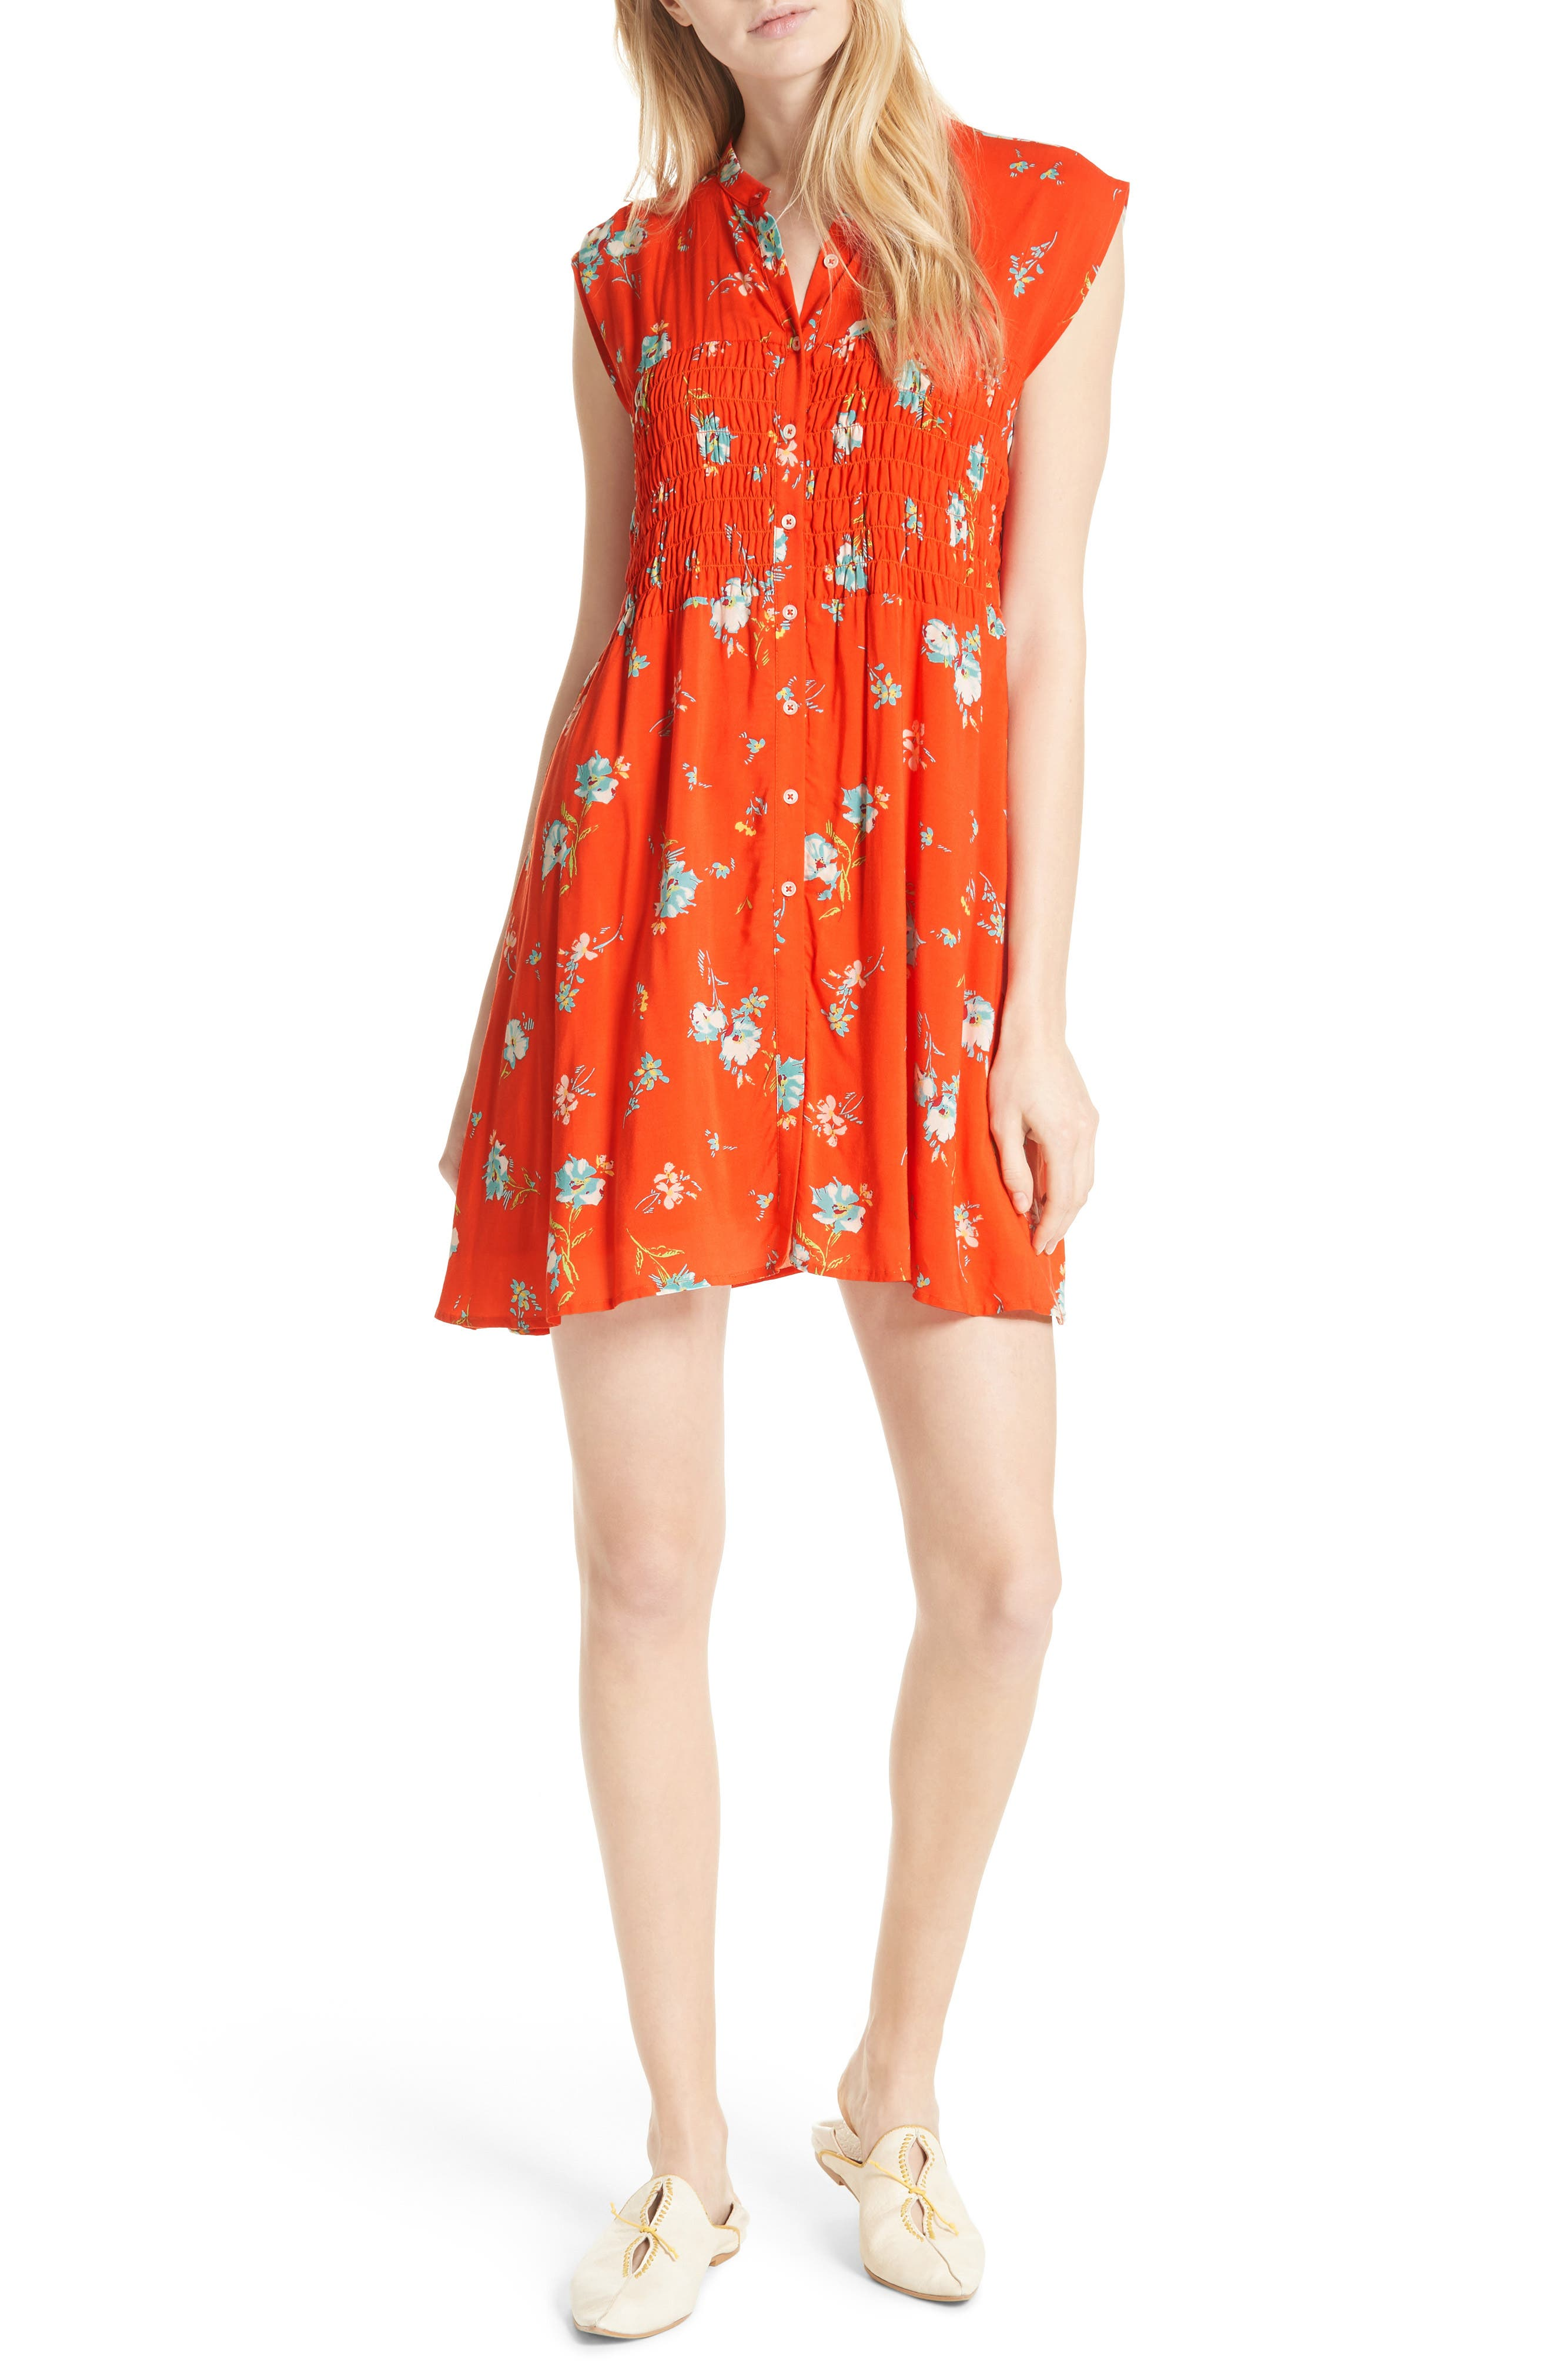 FREE PEOPLE, Greatest Day Smocked Minidress, Main thumbnail 1, color, RED